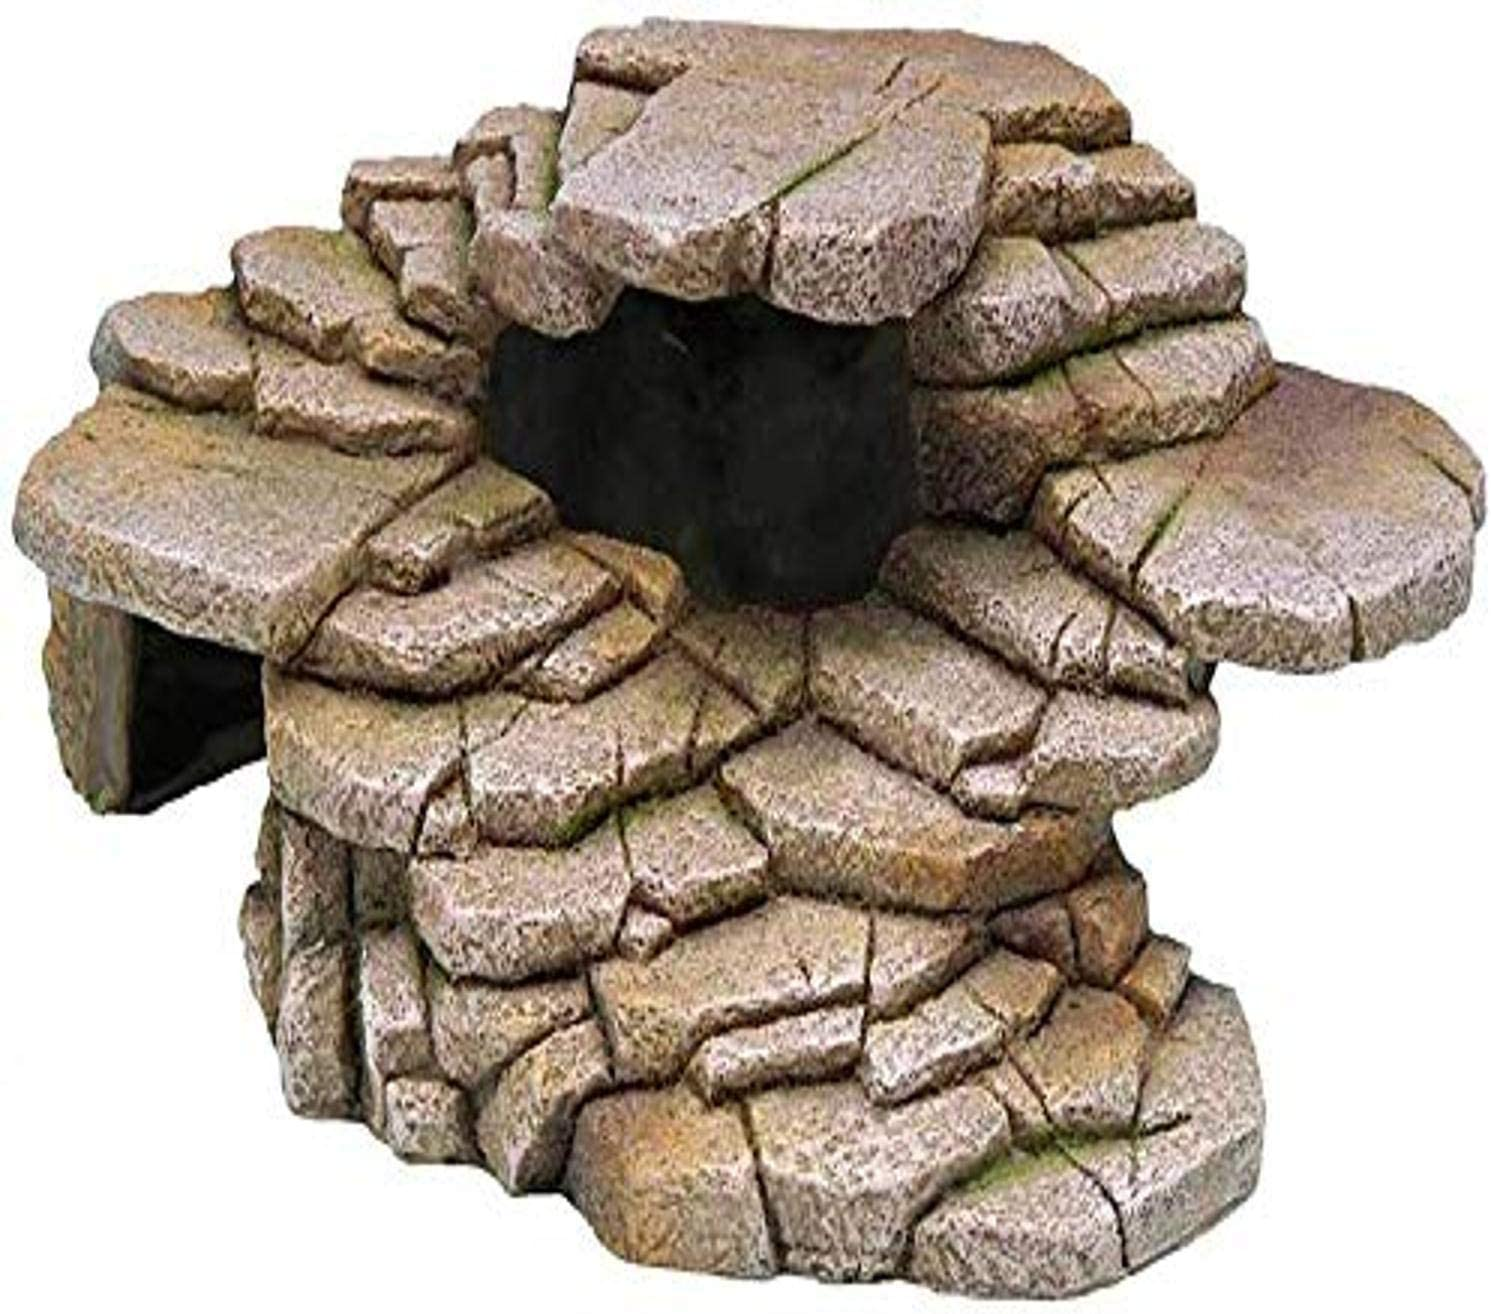 Penn-Plax Reptology Shale Step Ledge for Aquariums & Terrariums